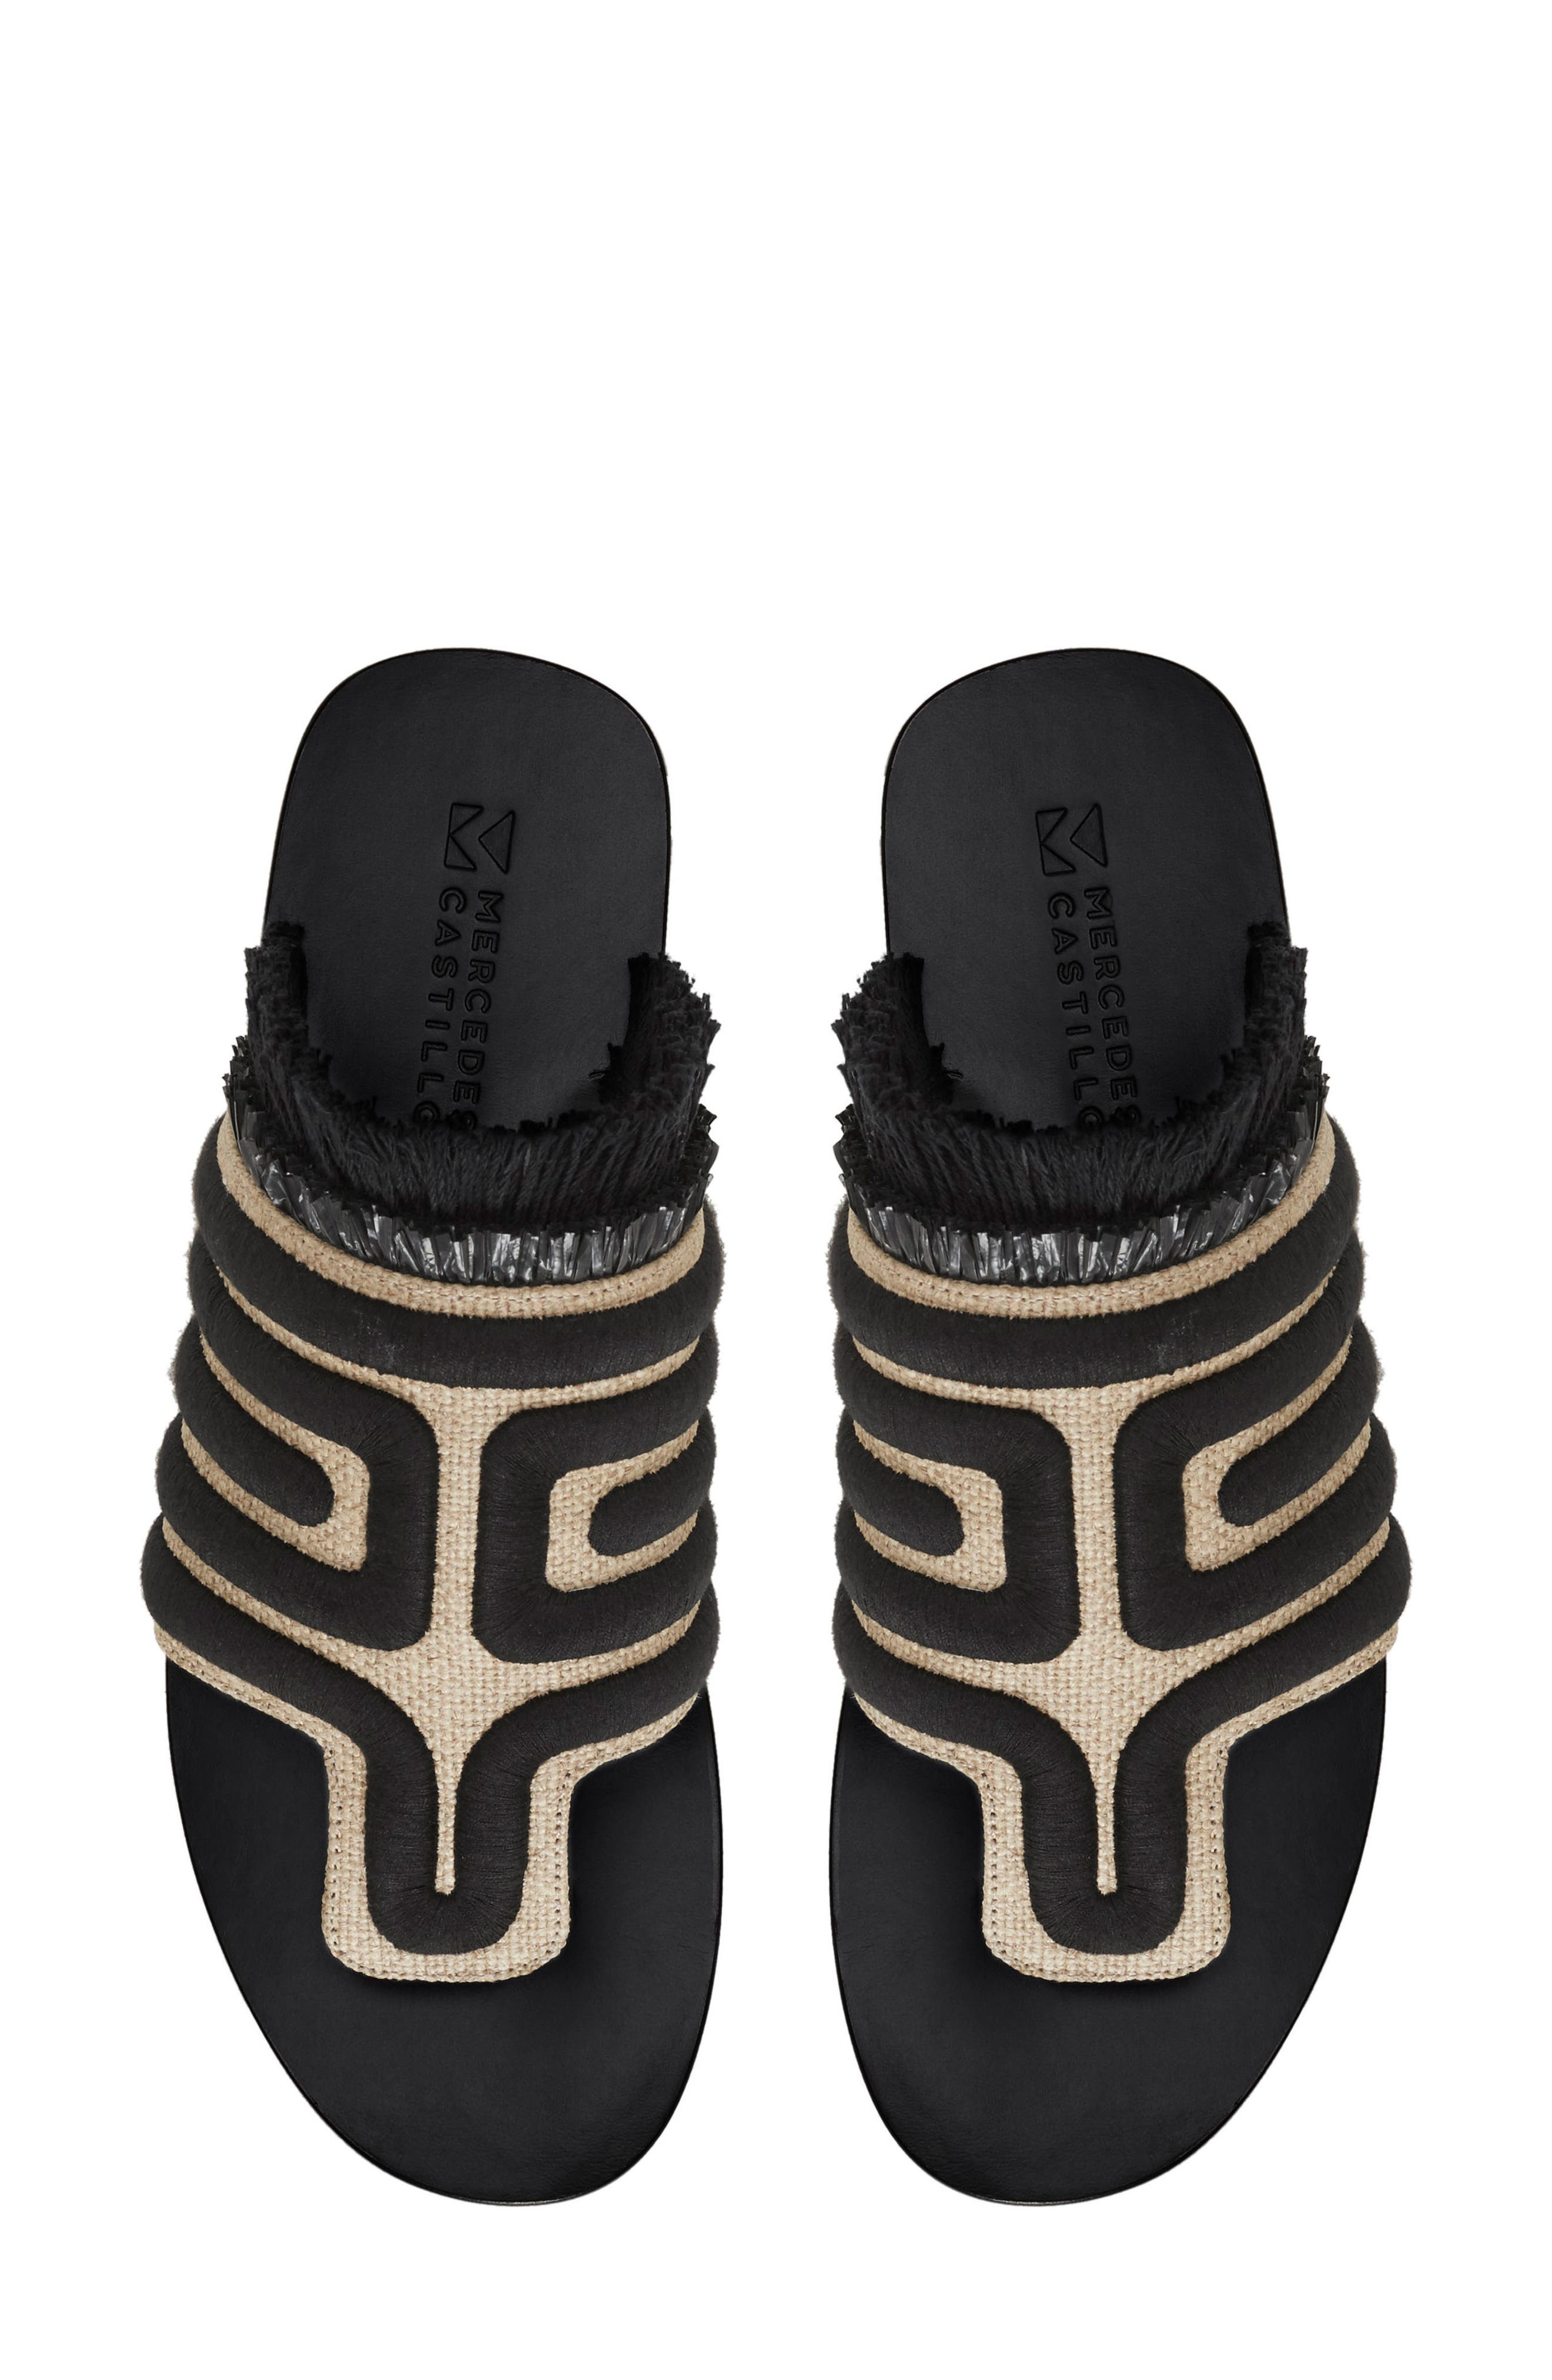 Lucara Embroidered Sandal,                             Alternate thumbnail 7, color,                             002